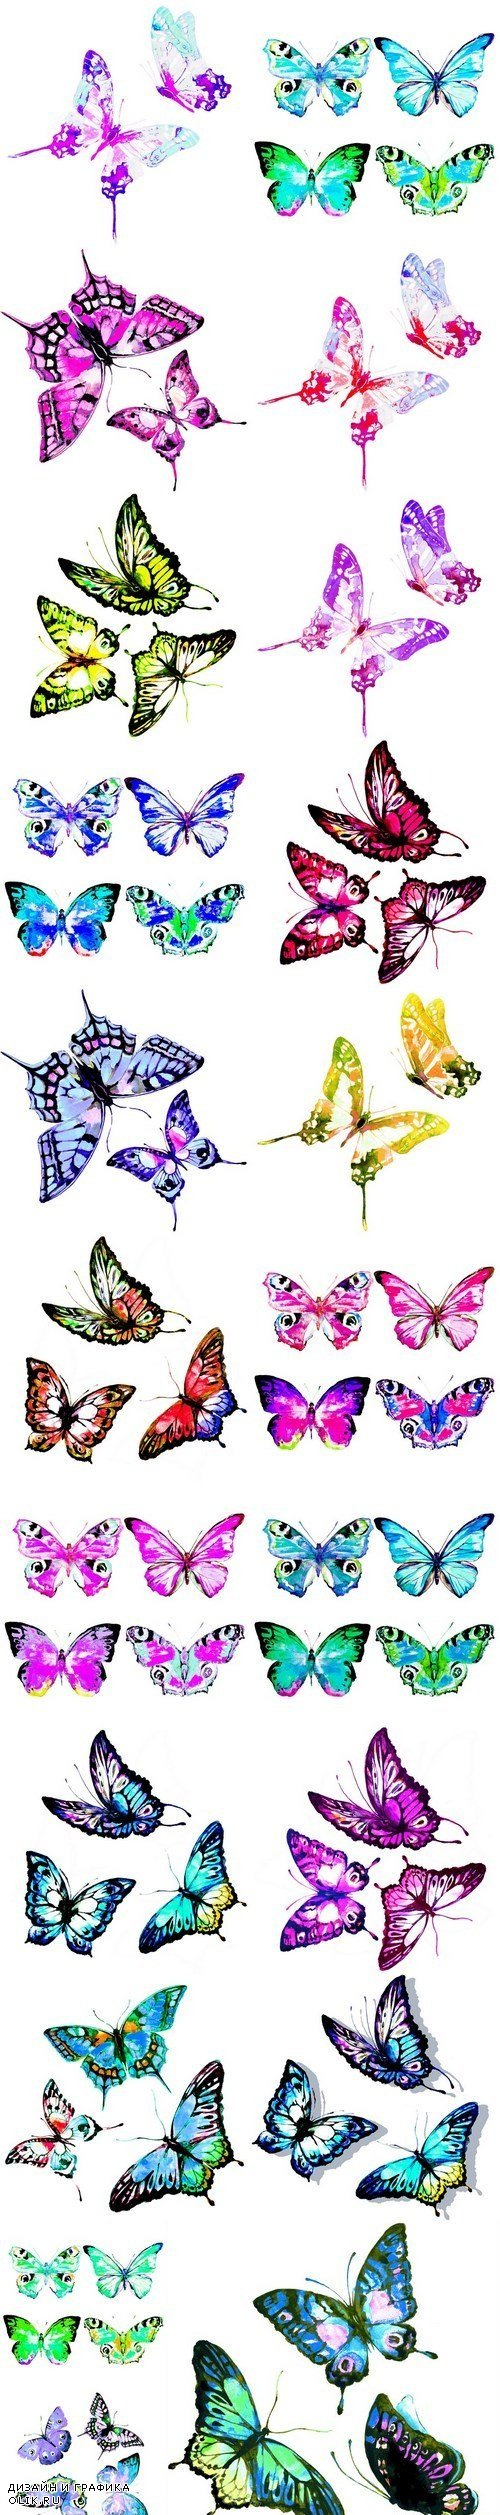 Beautiful watercolor butterflies - 21xUHQ JPEG